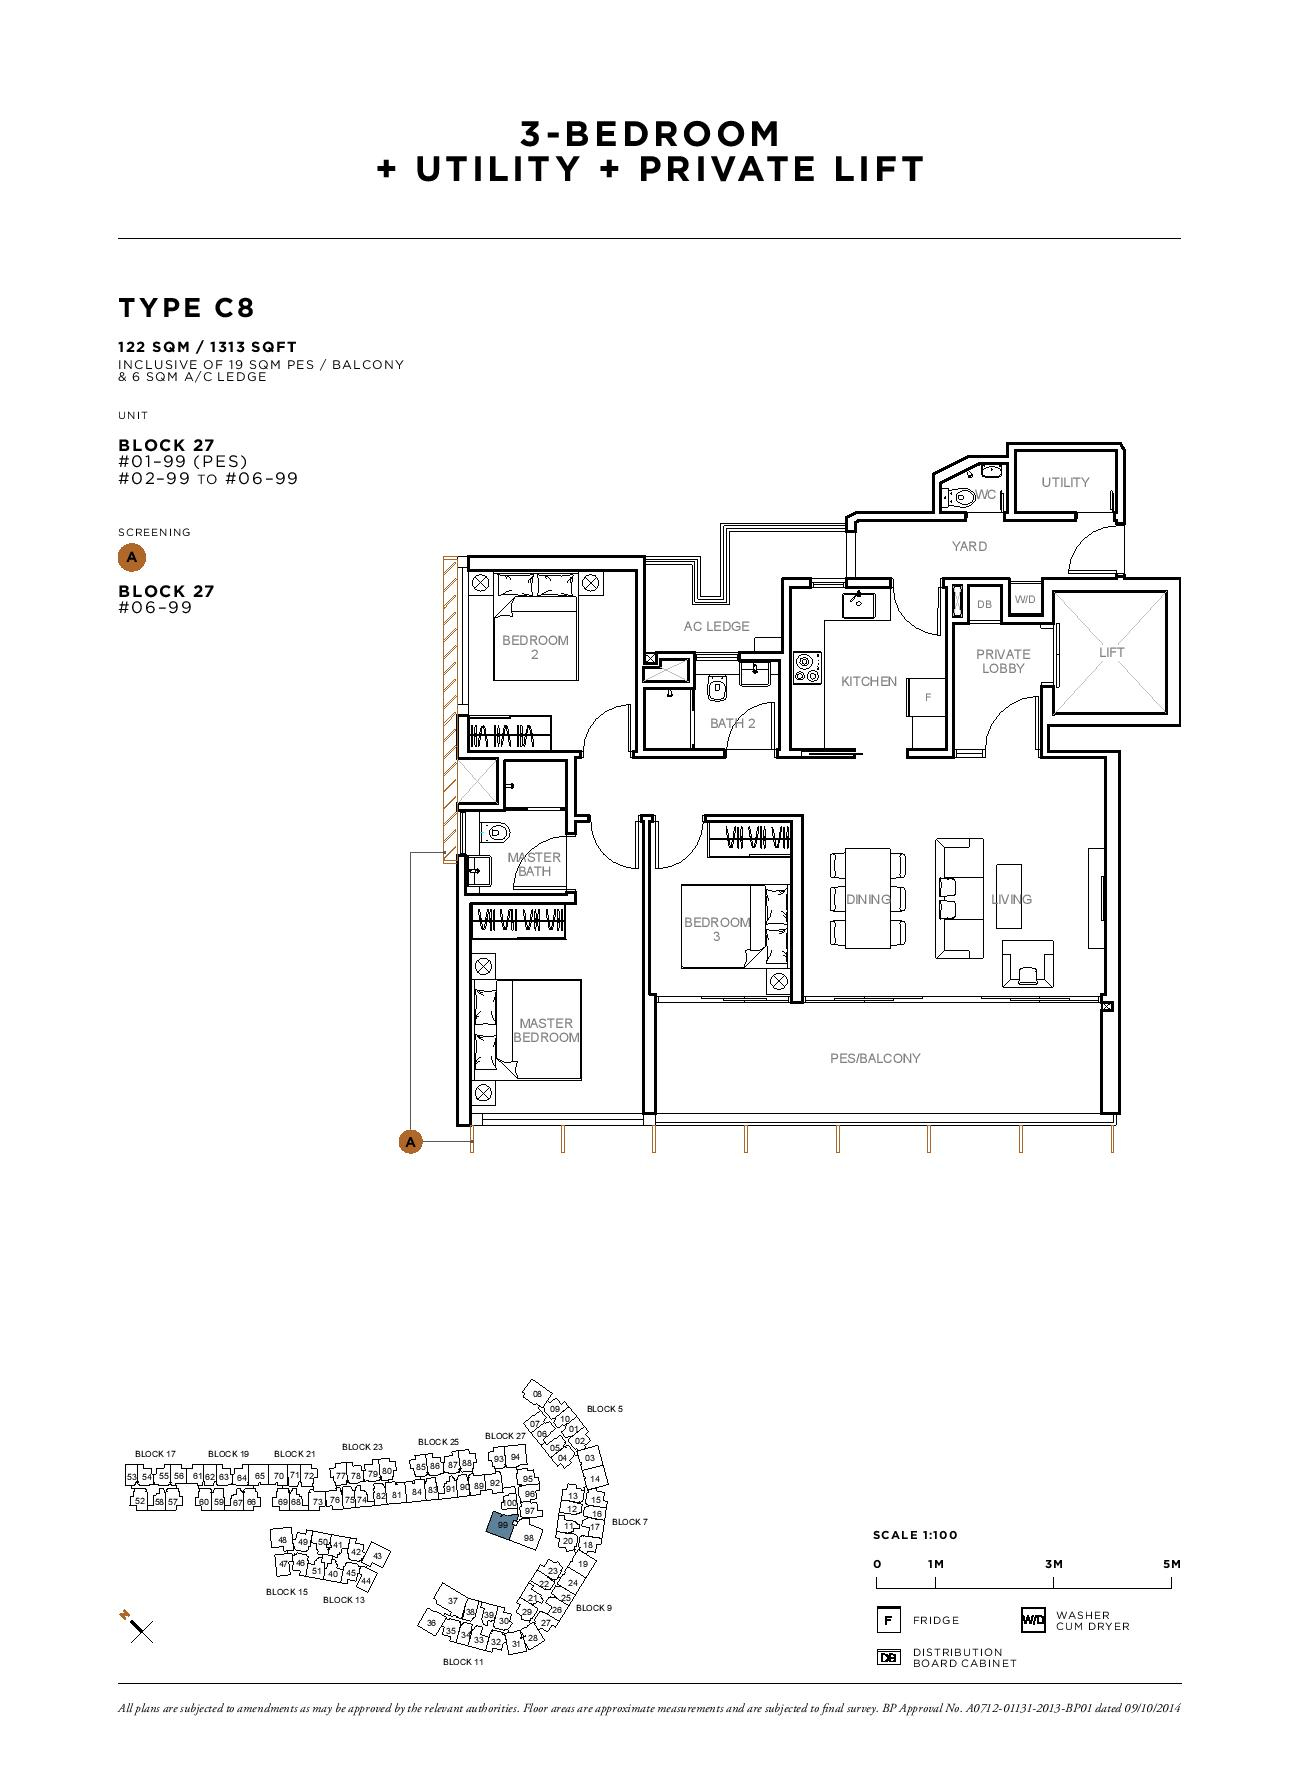 Sophia Hills 3 Bedroom + Utility Private Lift Type C8 Floor Plans